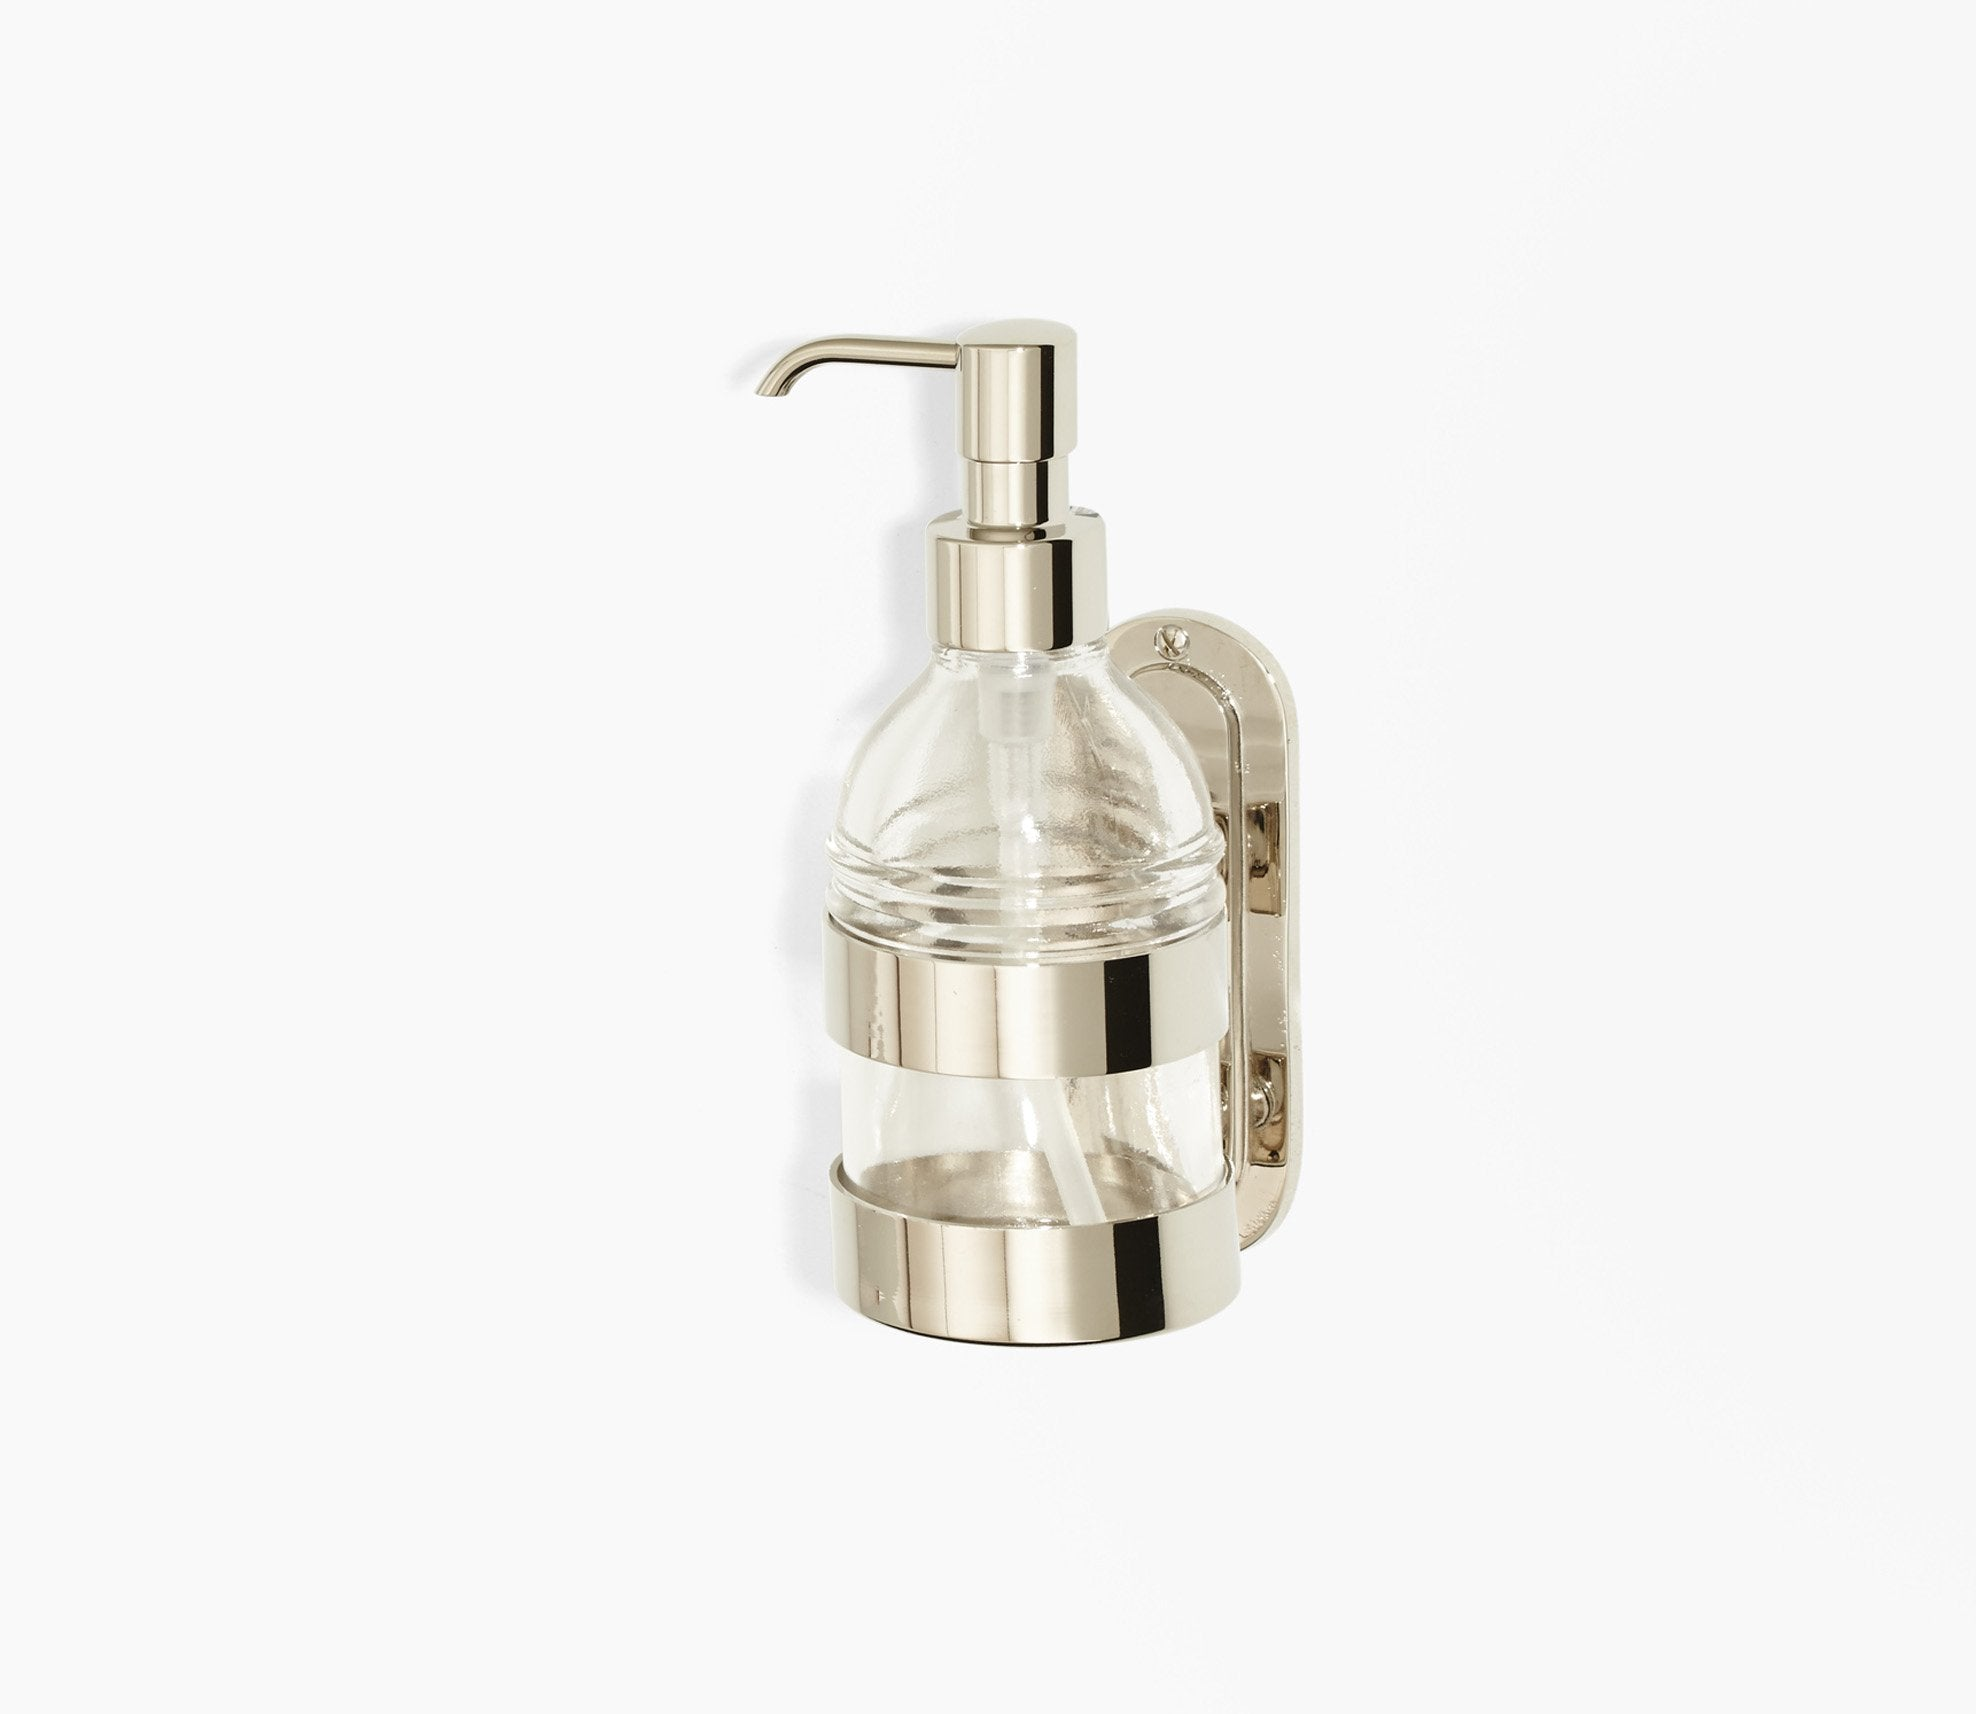 Moderna Wall Soap Pump Clear Glass Product Image 1